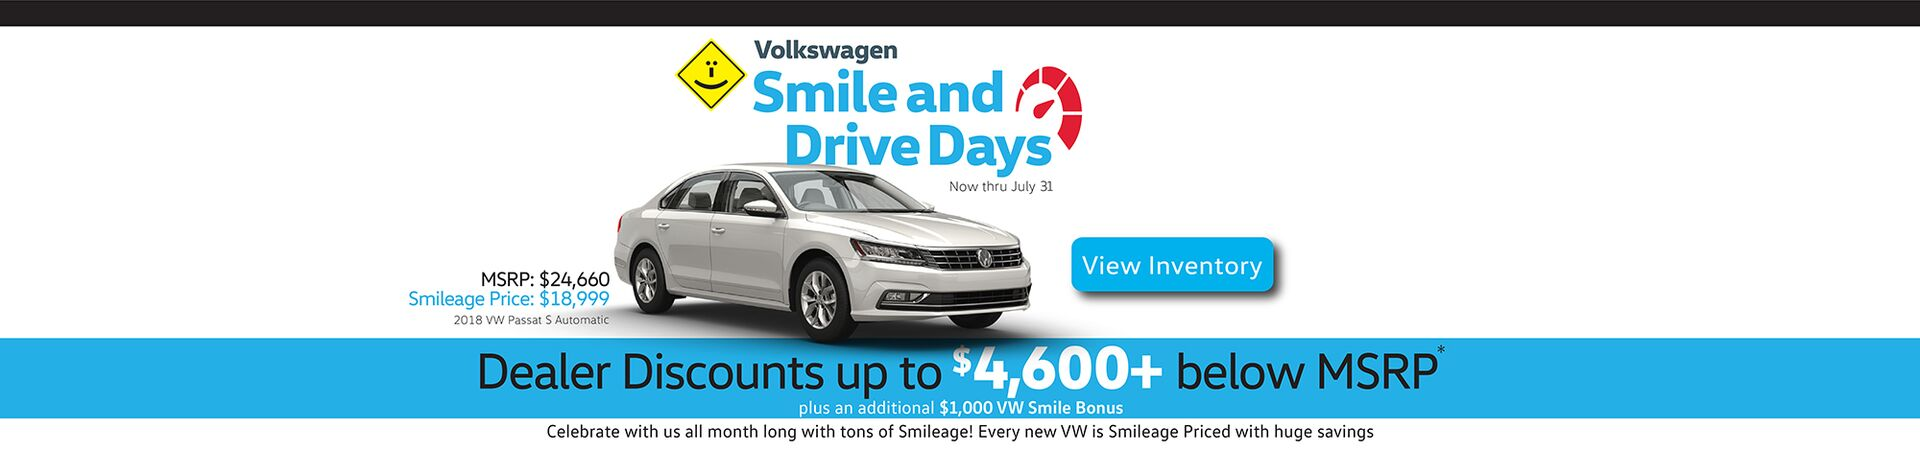 July Smile and Drive Days with discounts up to $5,600+ below MSRP